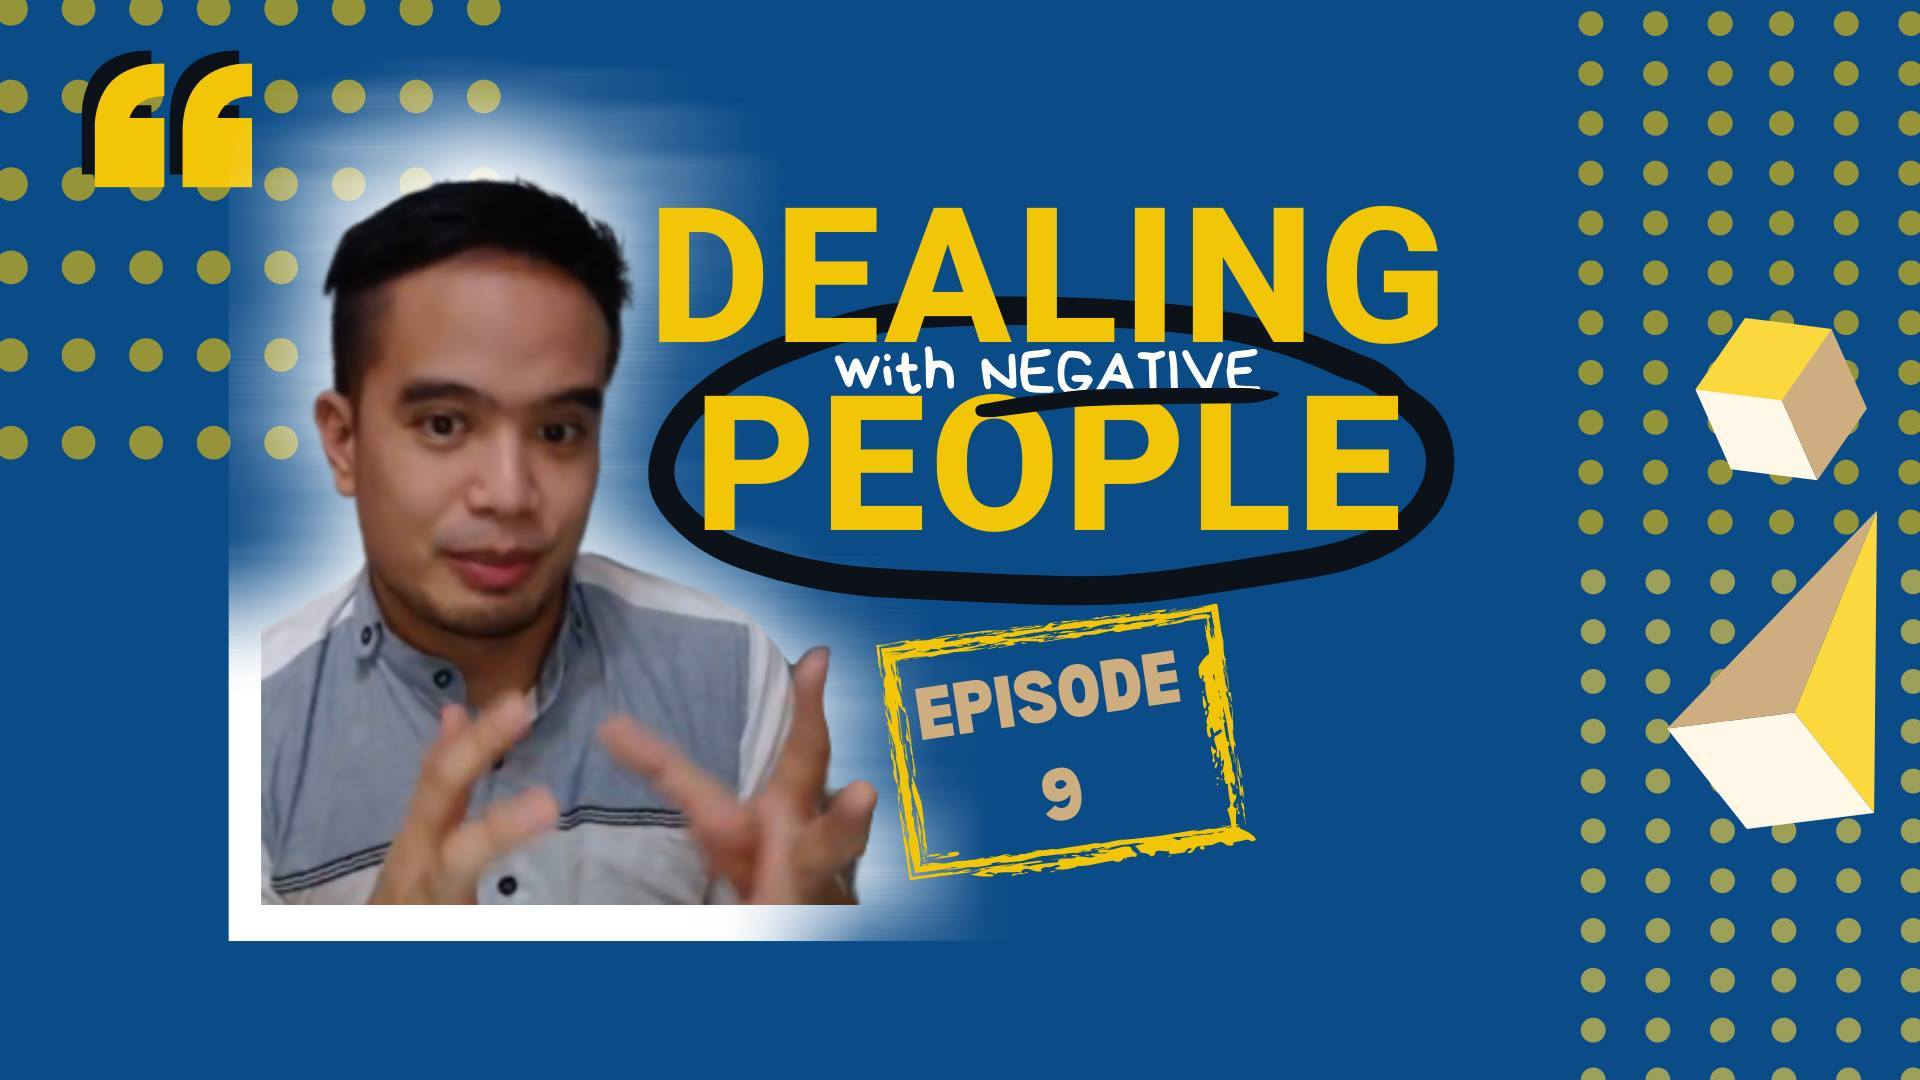 Dealing with Negative People - 5 Minutes to Happy EP 9 show art